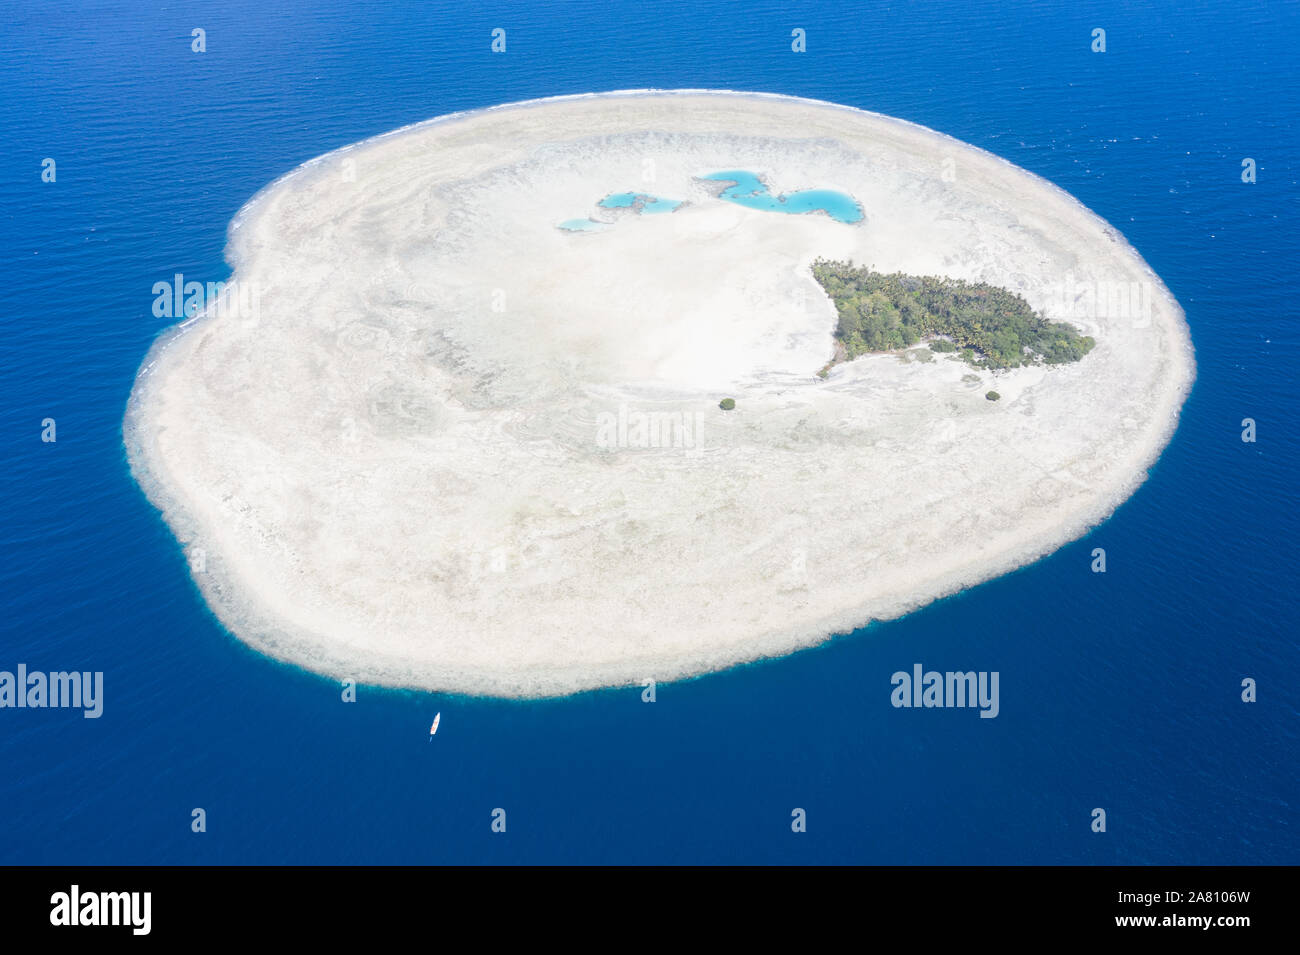 A Pinisi schooner drifts near the remote, tropical island of Midorang in the Ceram Sea. This area harbors extremely high marine biodiversity. Stock Photo